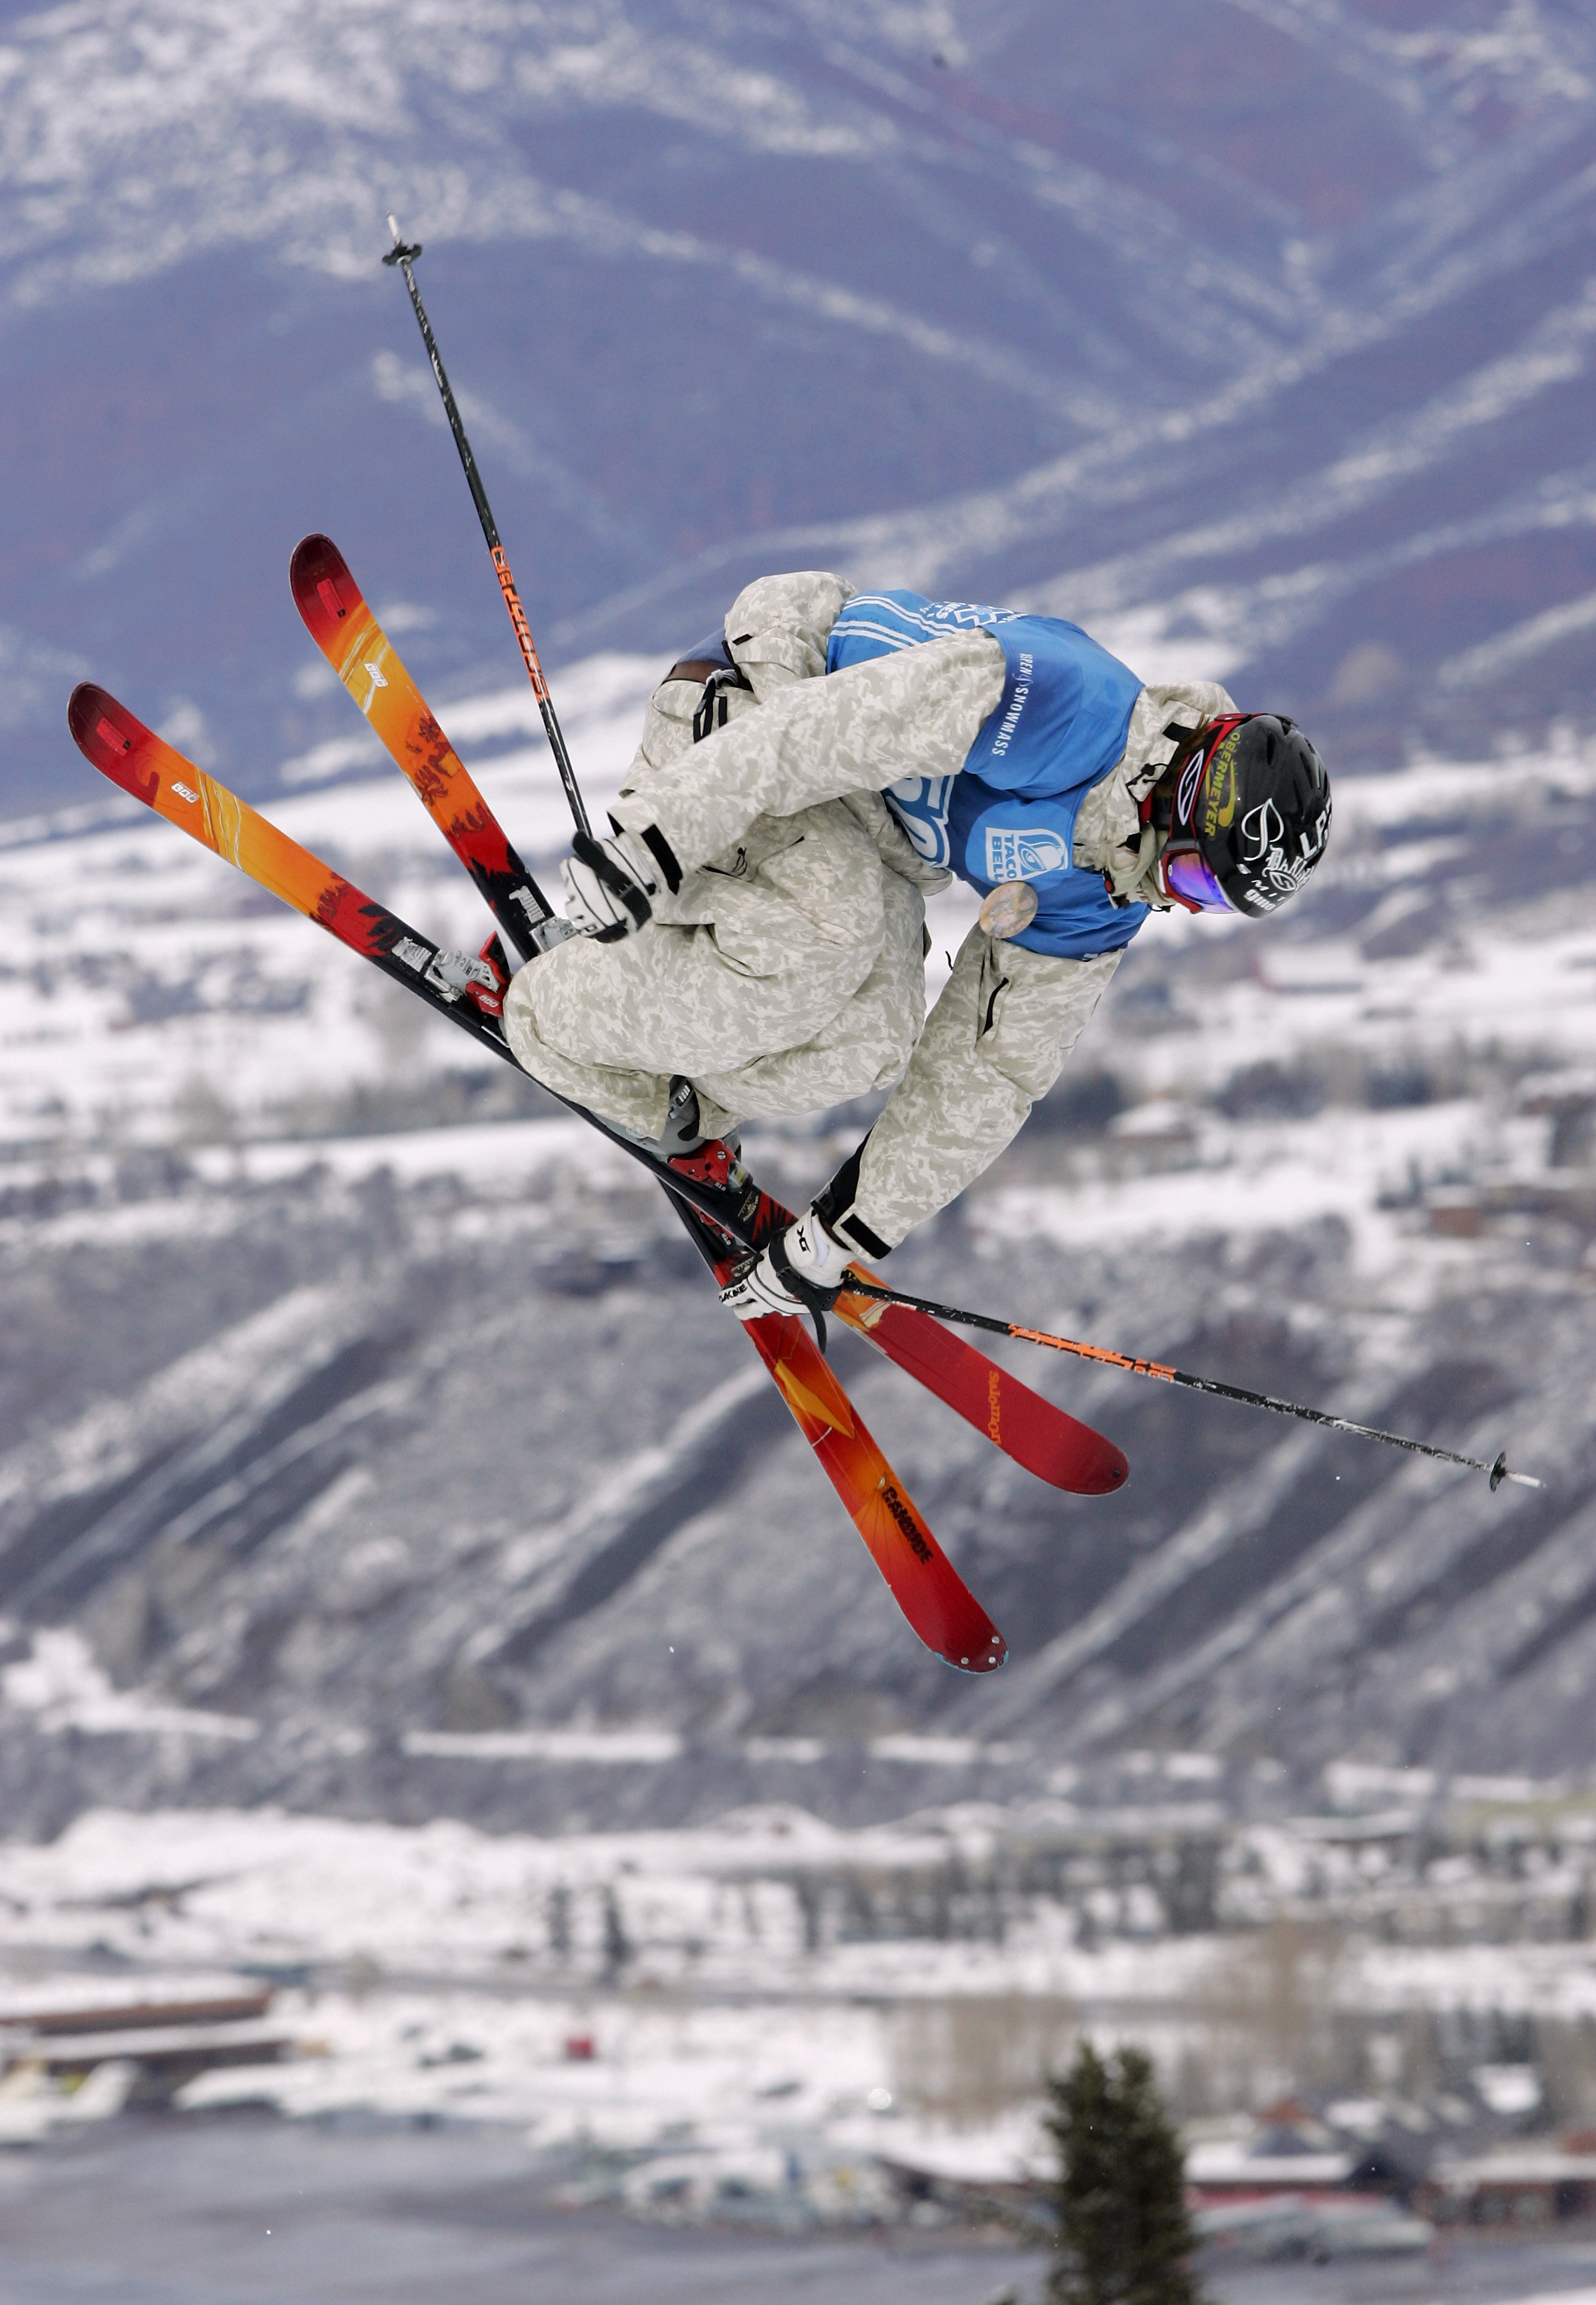 ASPEN, CO - JANUARY 30:  Peter Olenick of Carbondale, Colorado, competes during the Ski Slopestyle Finals the Winter X Games Nine on January 30, 2005 at Buttermilk in Aspen, Colorado.  (Photo by Brian Bahr/Getty Images)